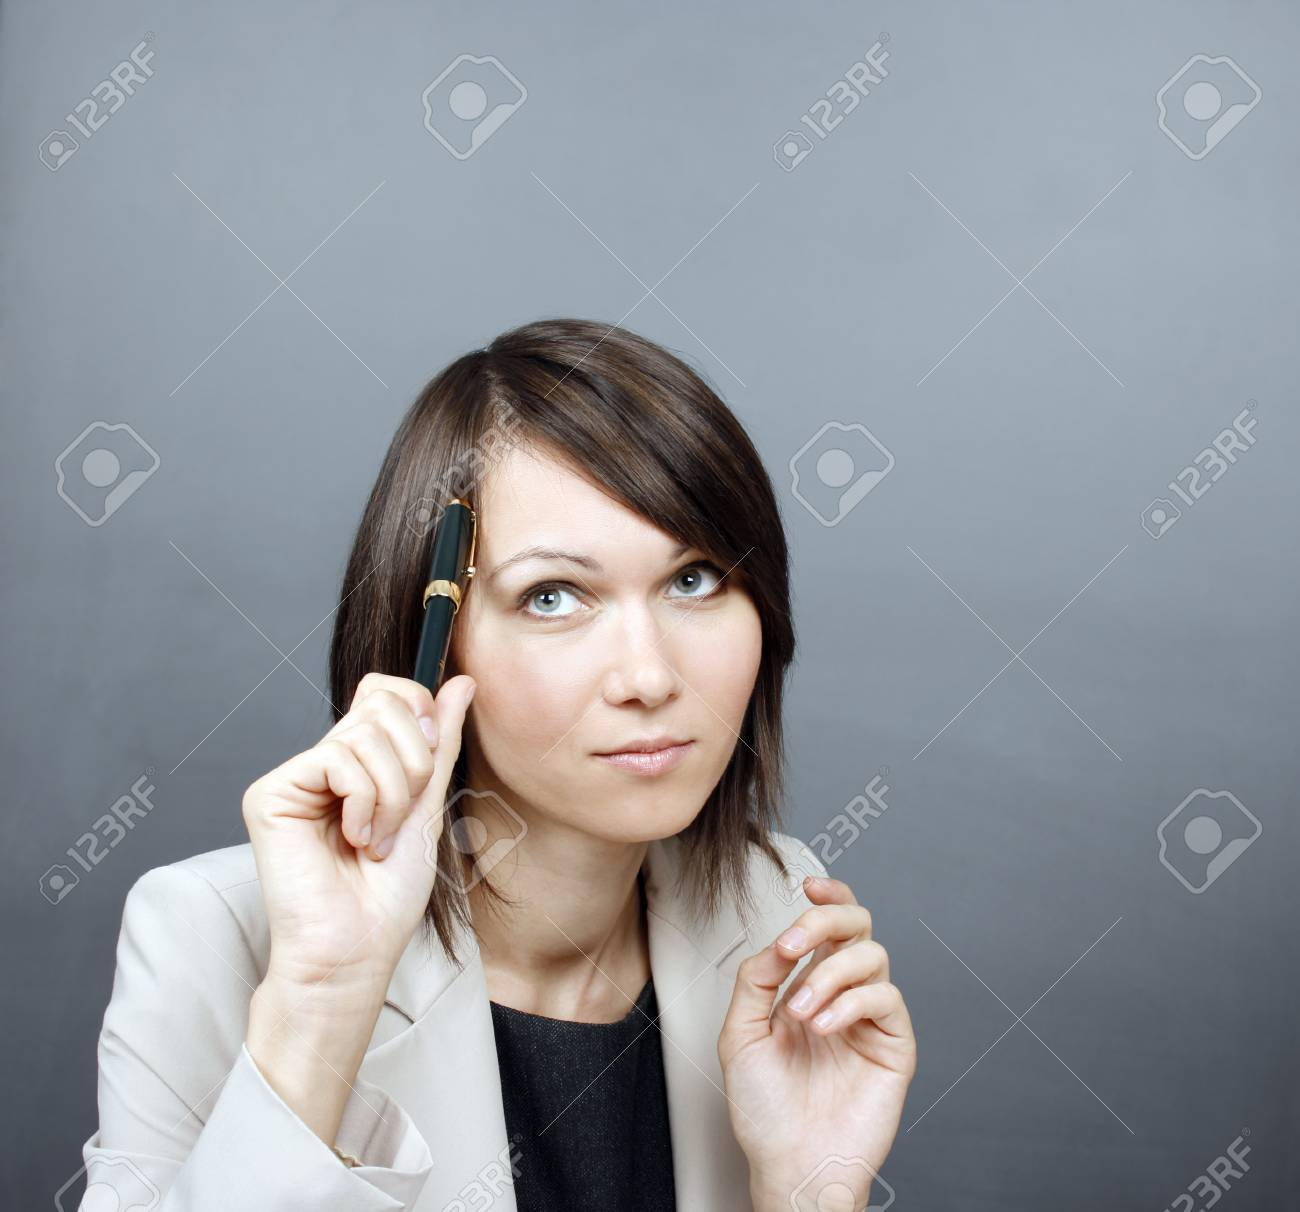 Businesswoman holding a pen Stock Photo - 17645366